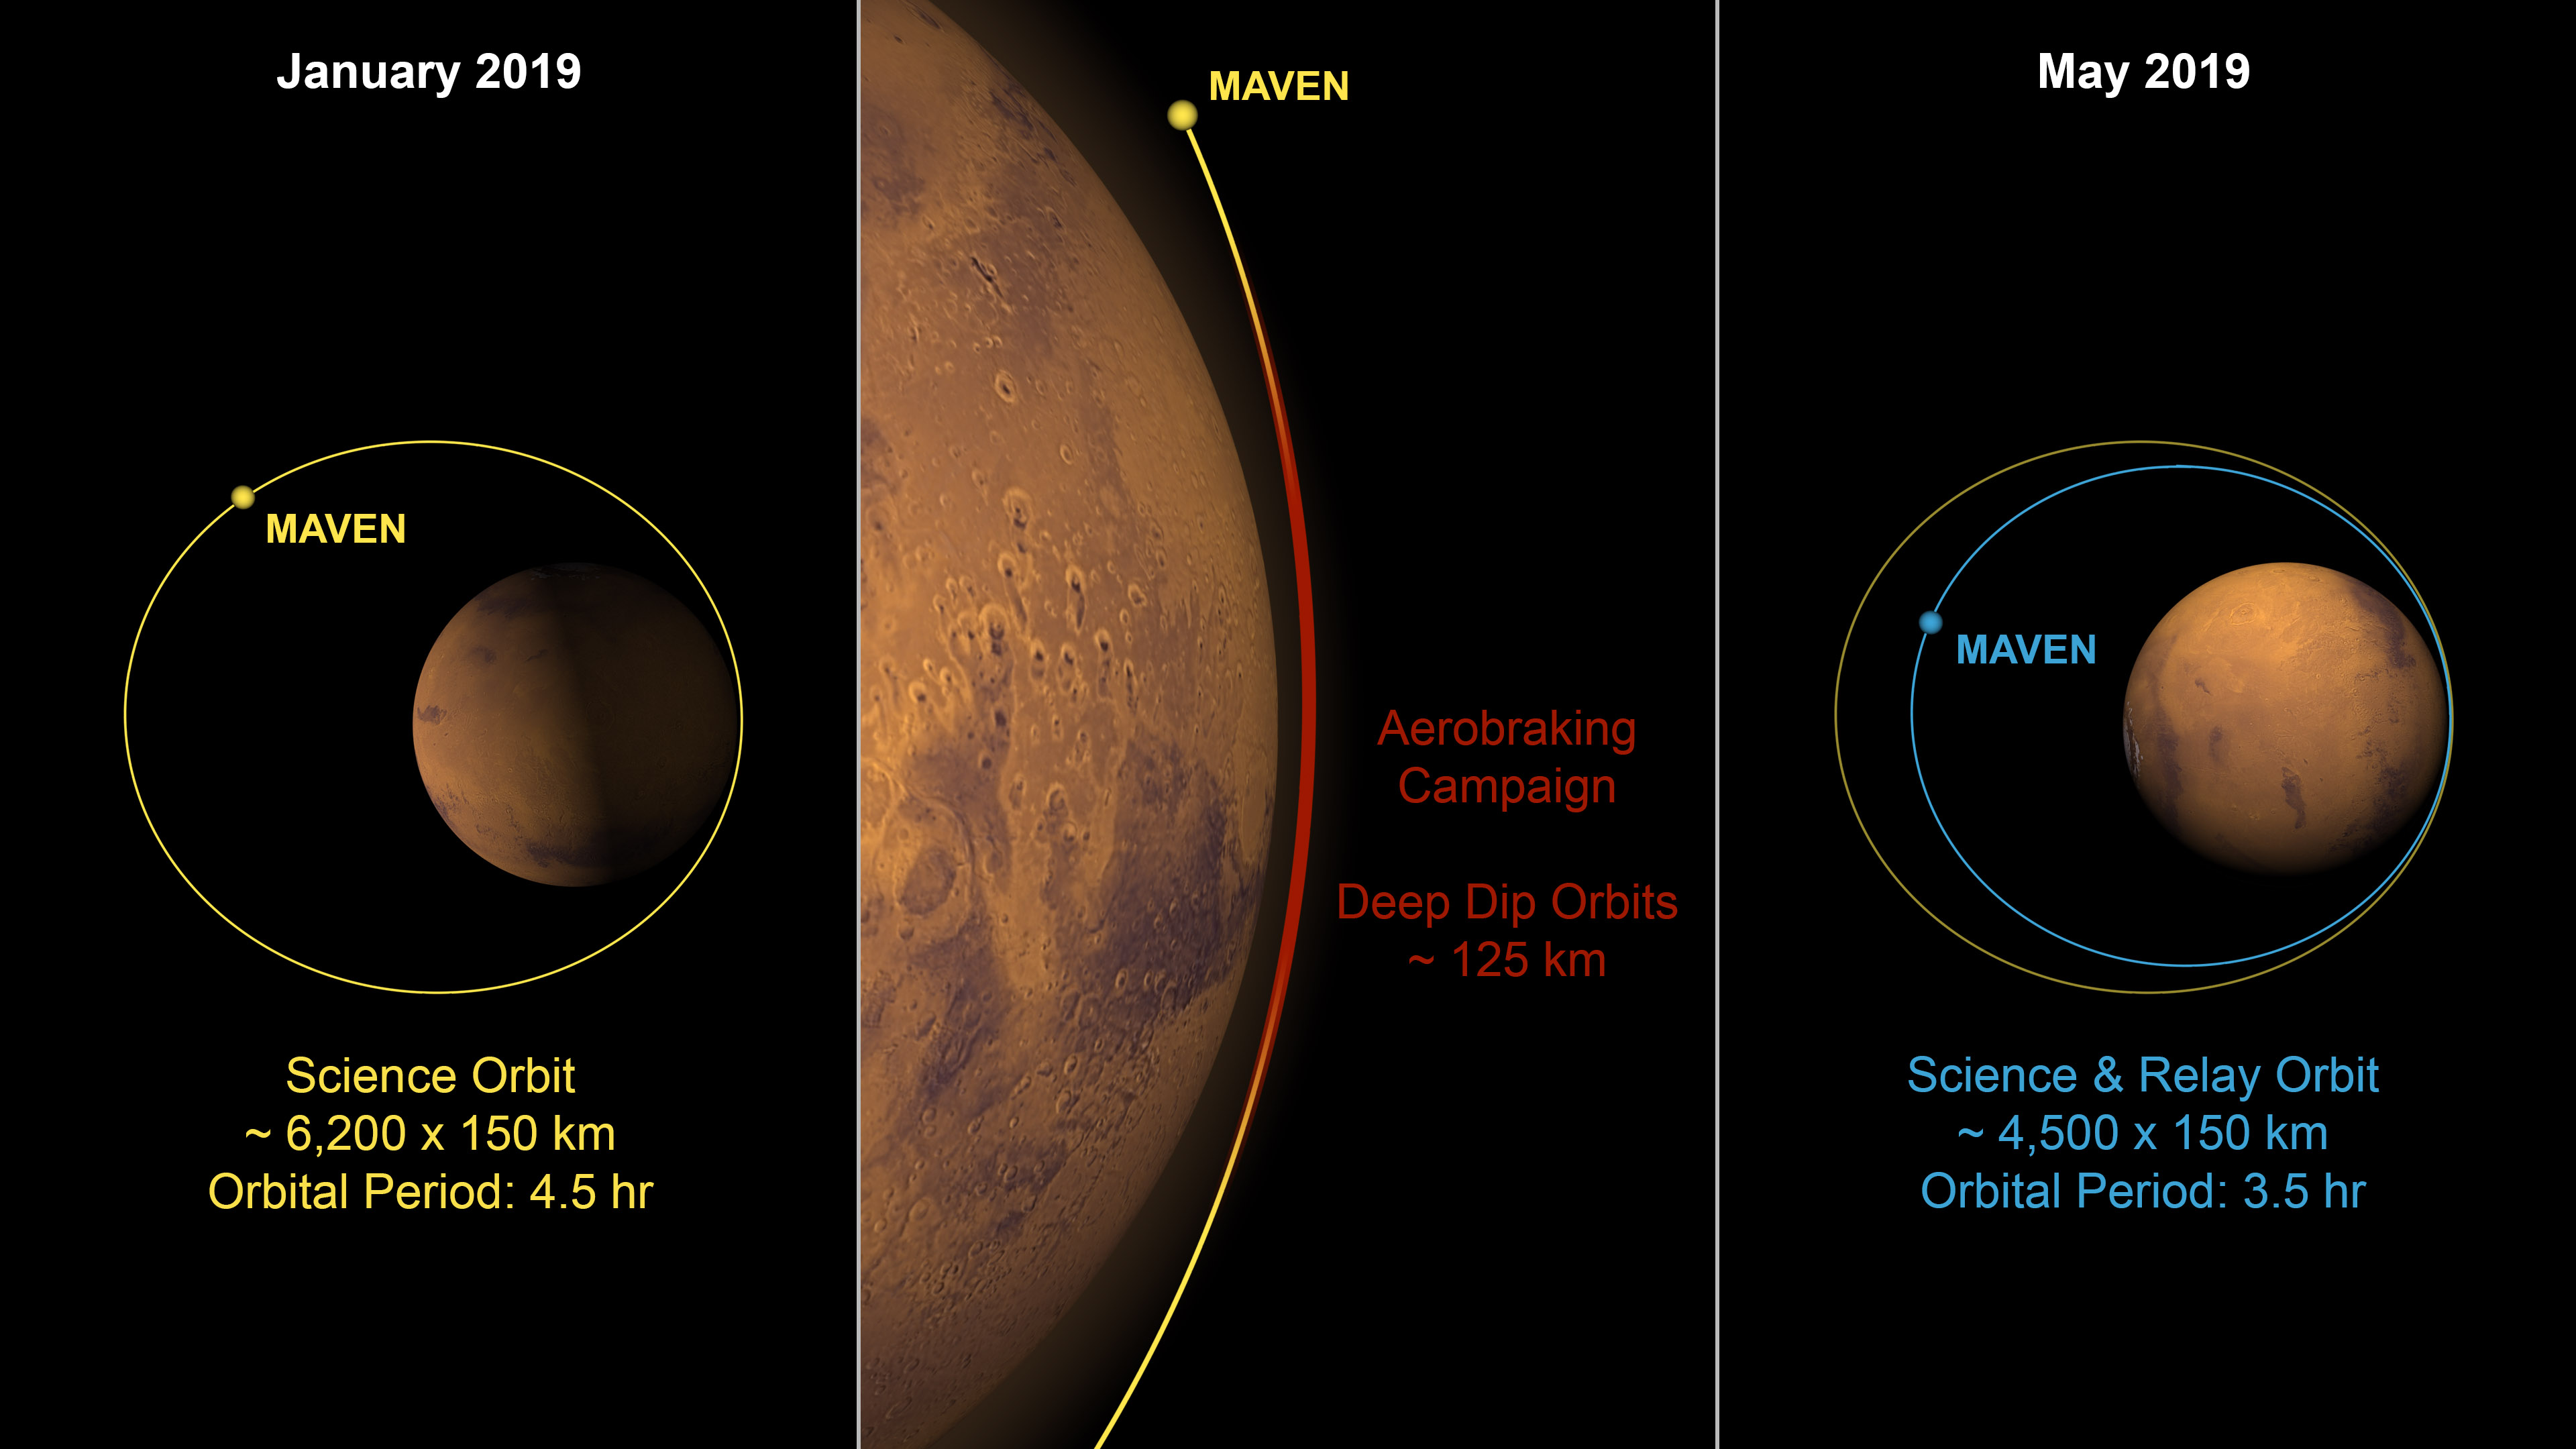 Aerobraking plan for MAVEN